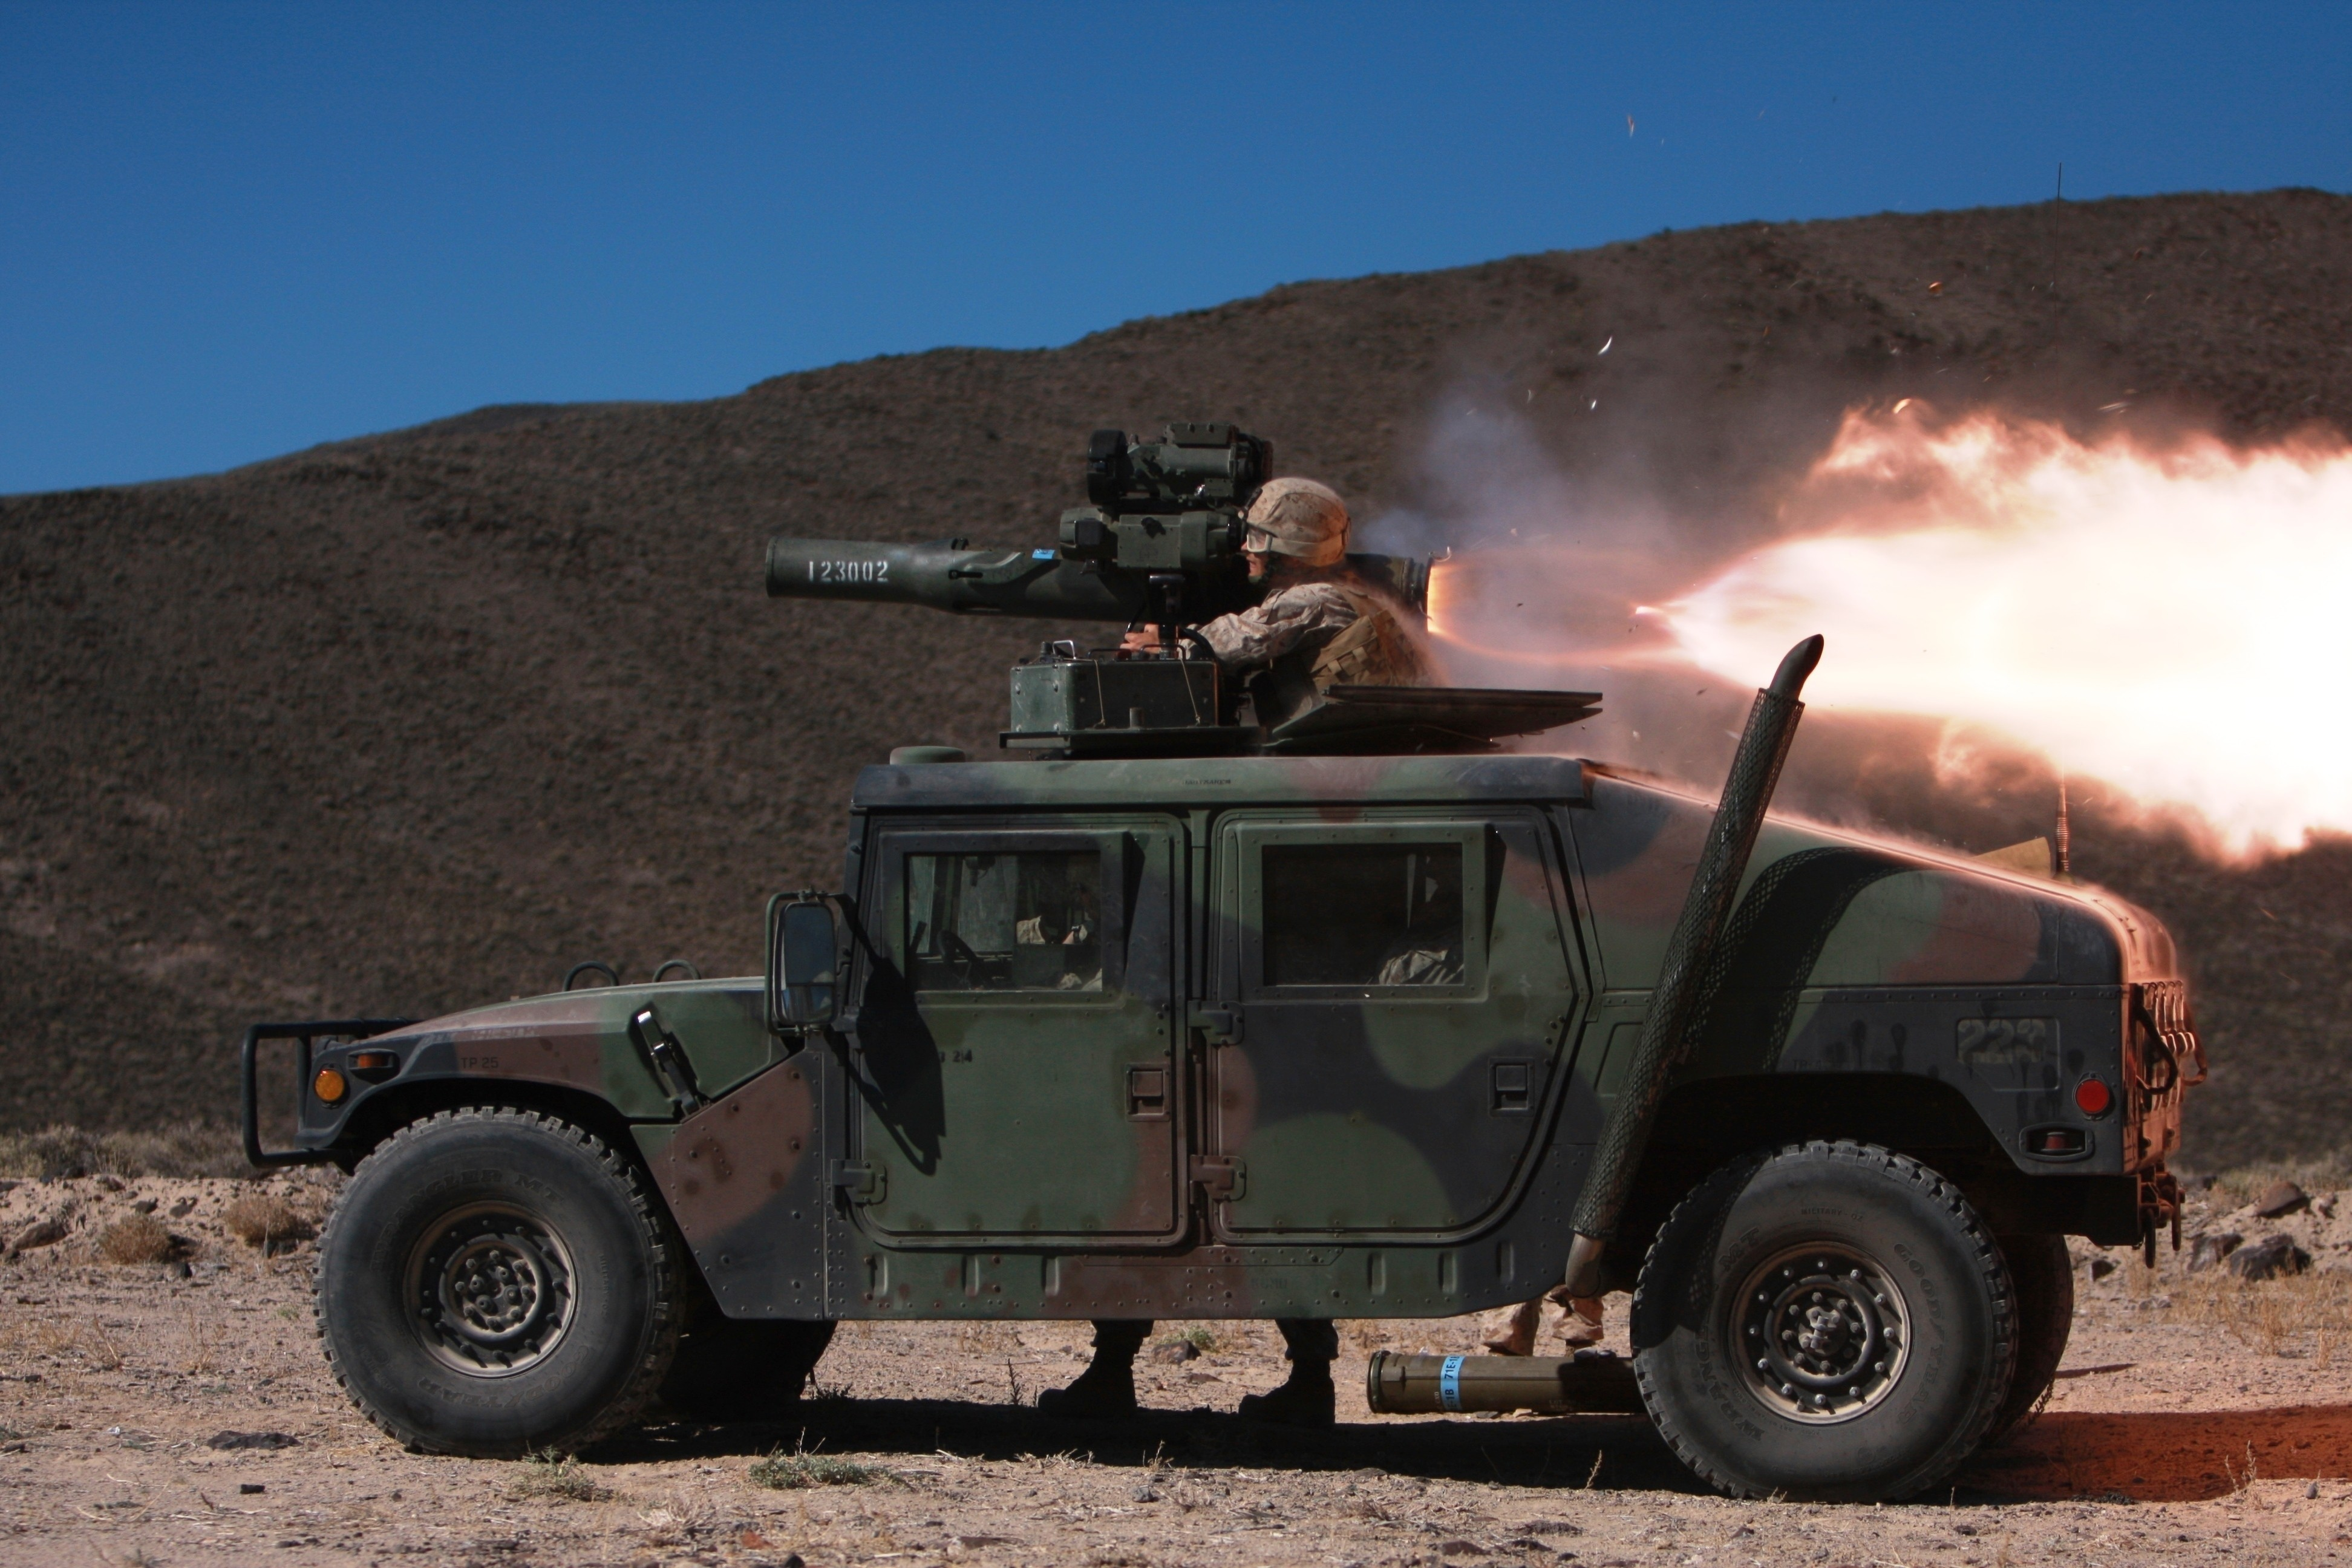 Rent A Suv >> Wallpaper Humvee, HMMWV, SUV, rocket launch, soldier, U.S. Army, Military #1811